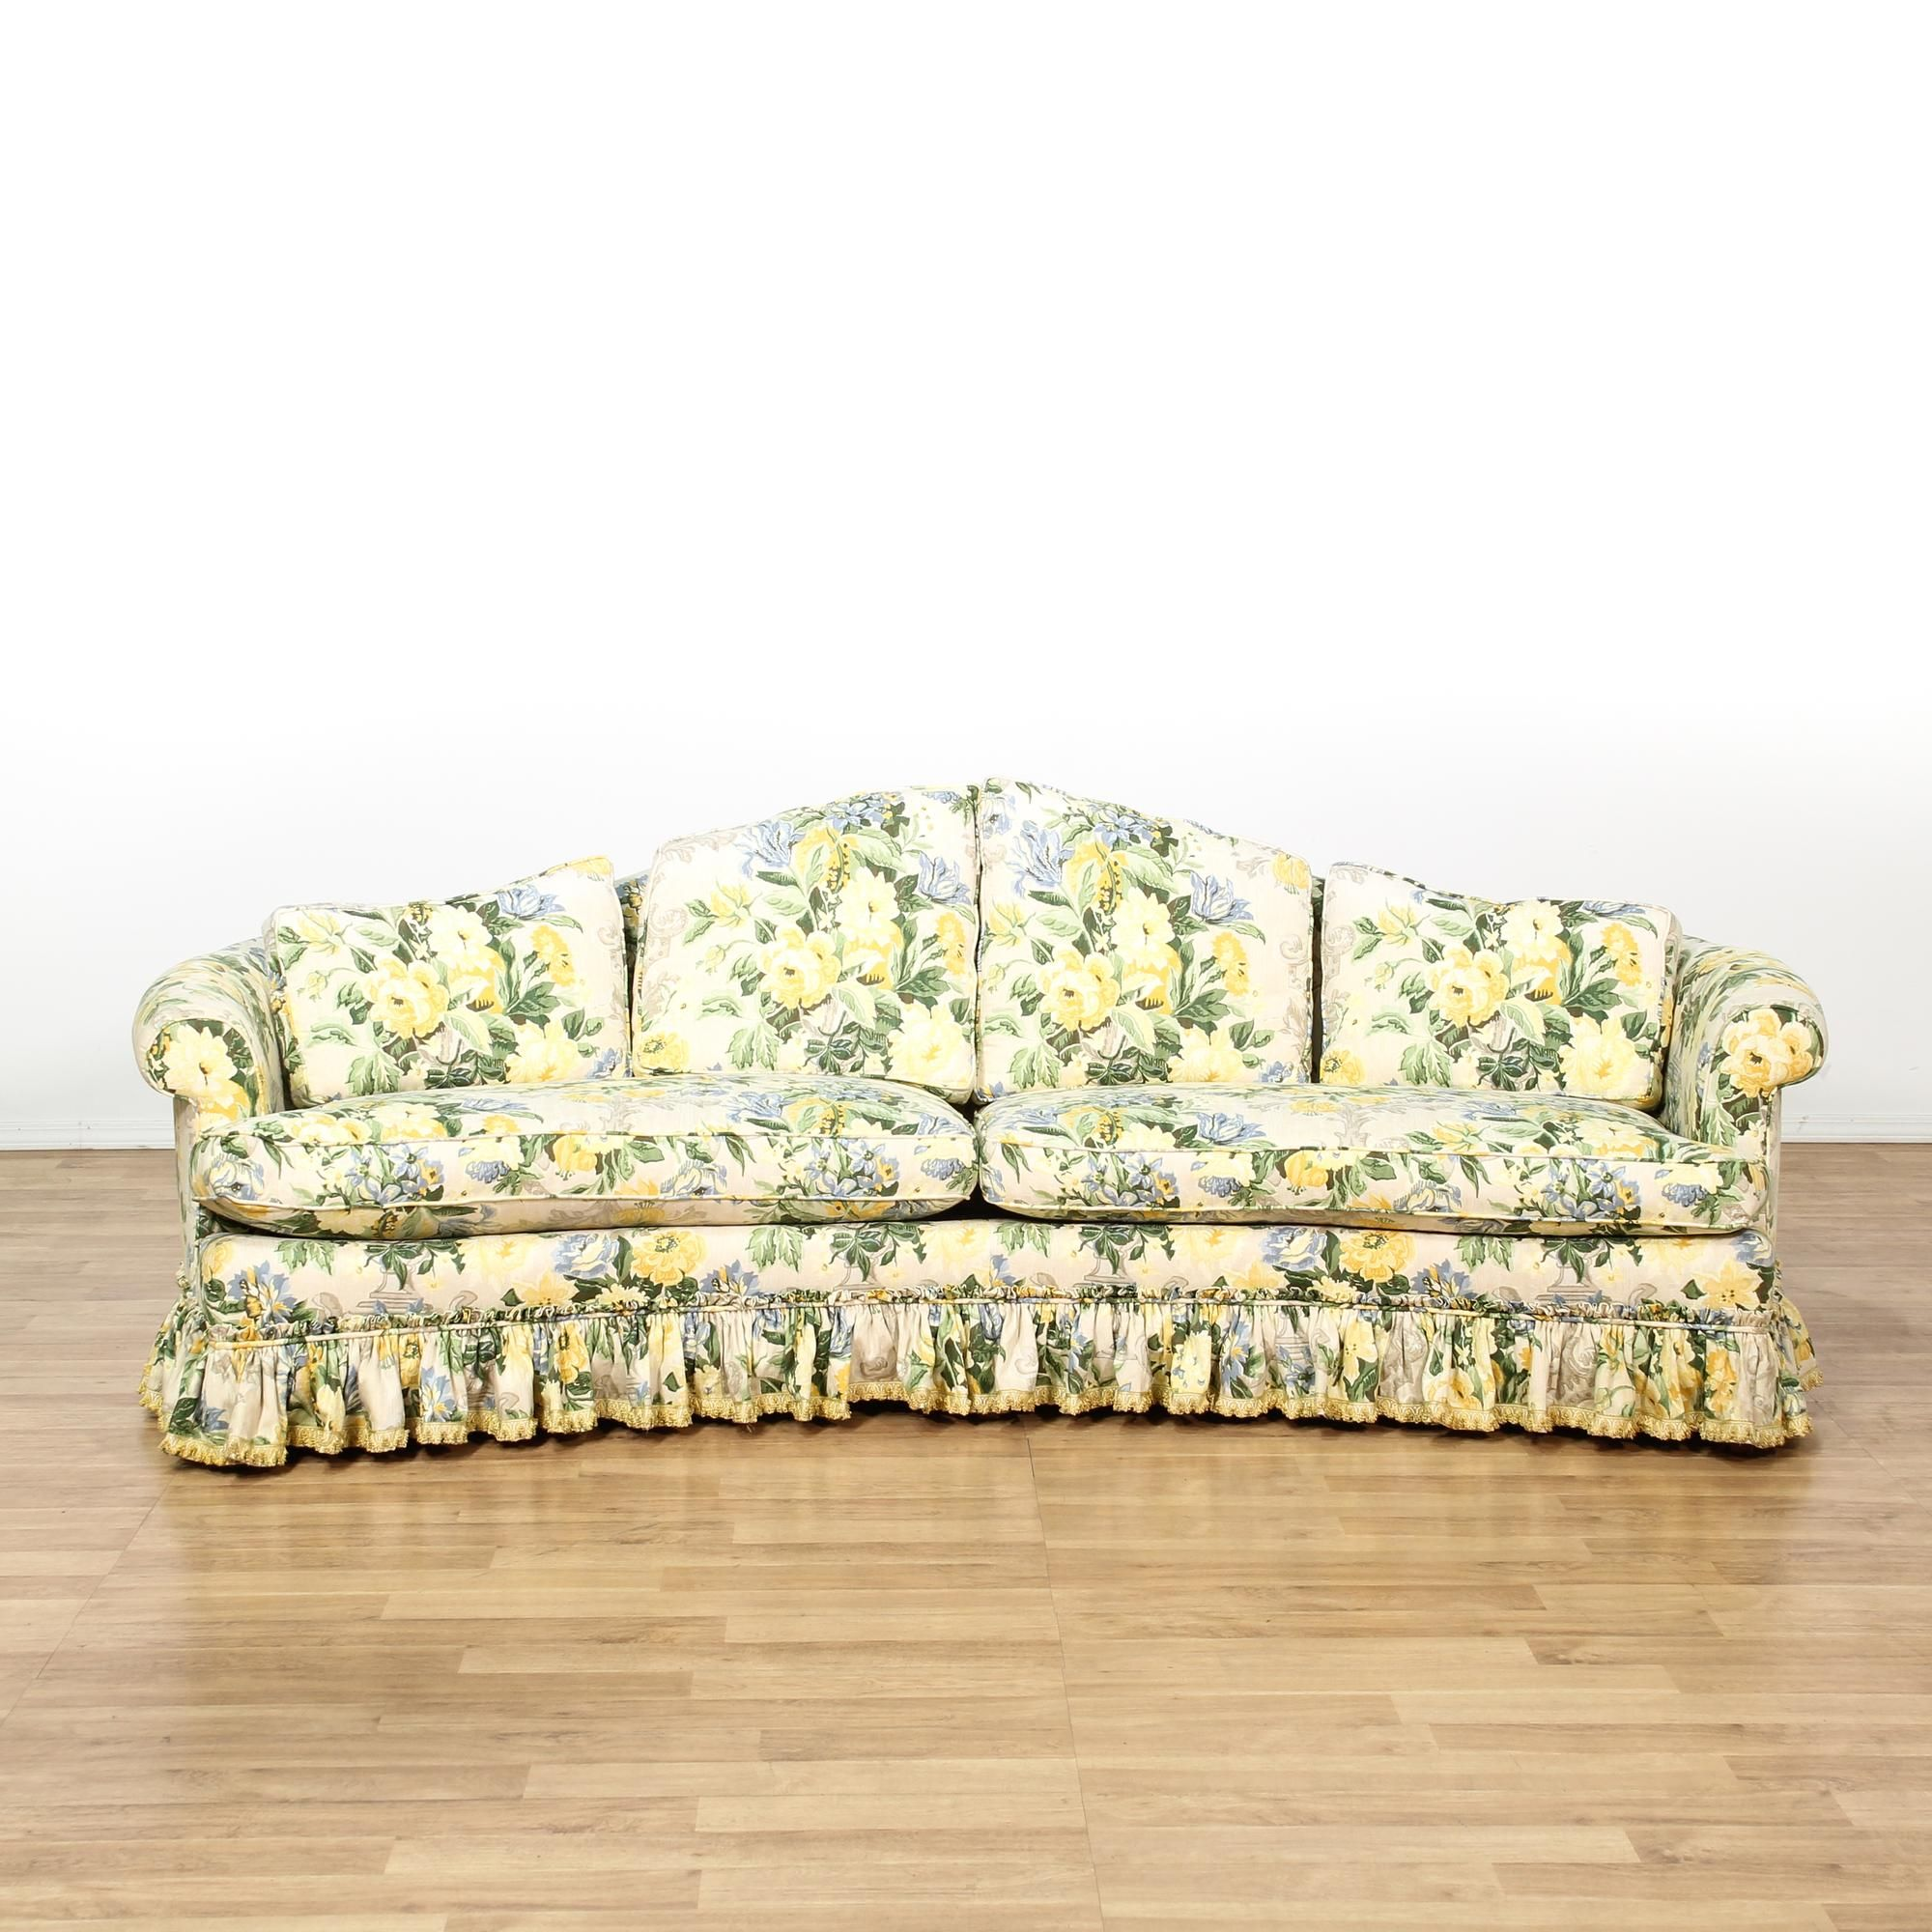 This Cottage Chic Sofa Is Upholstered In An Off White Fabric With A Yellow Green And Blue Floral Print This Long Sof Cottage Chic Chic Sofa Vintage Furniture